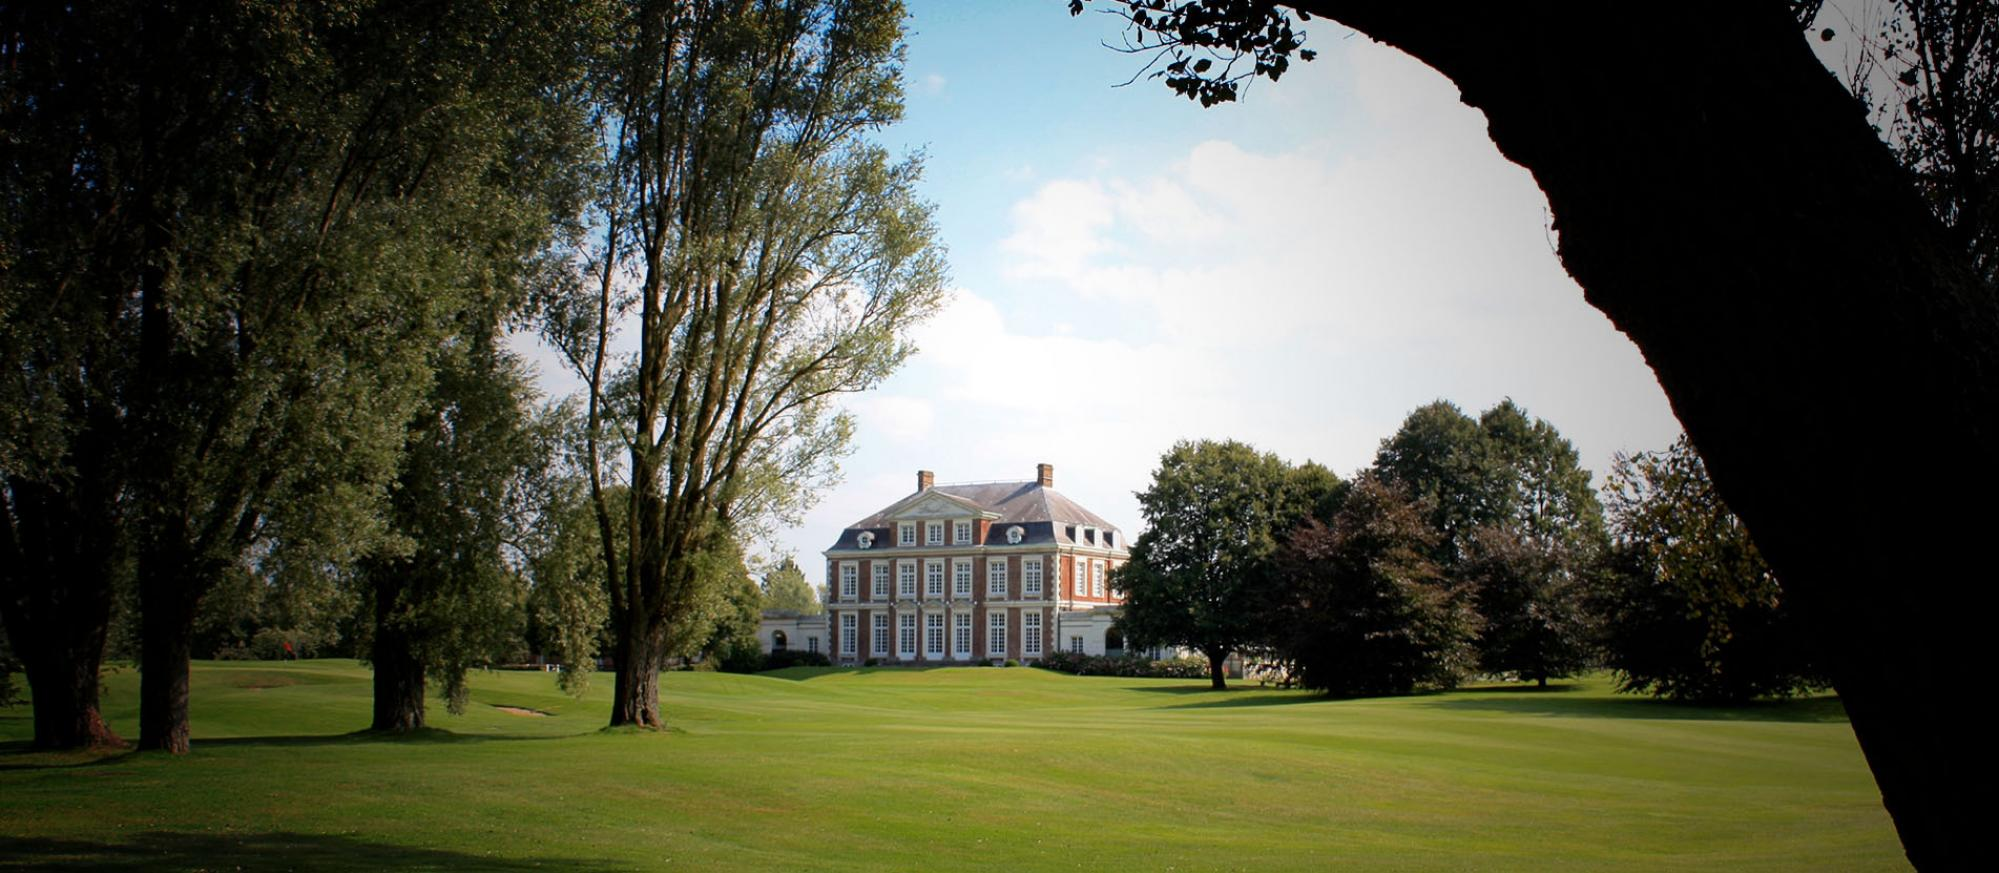 Golf de Bondues, Lille has got several of the premiere golf course near Northern France